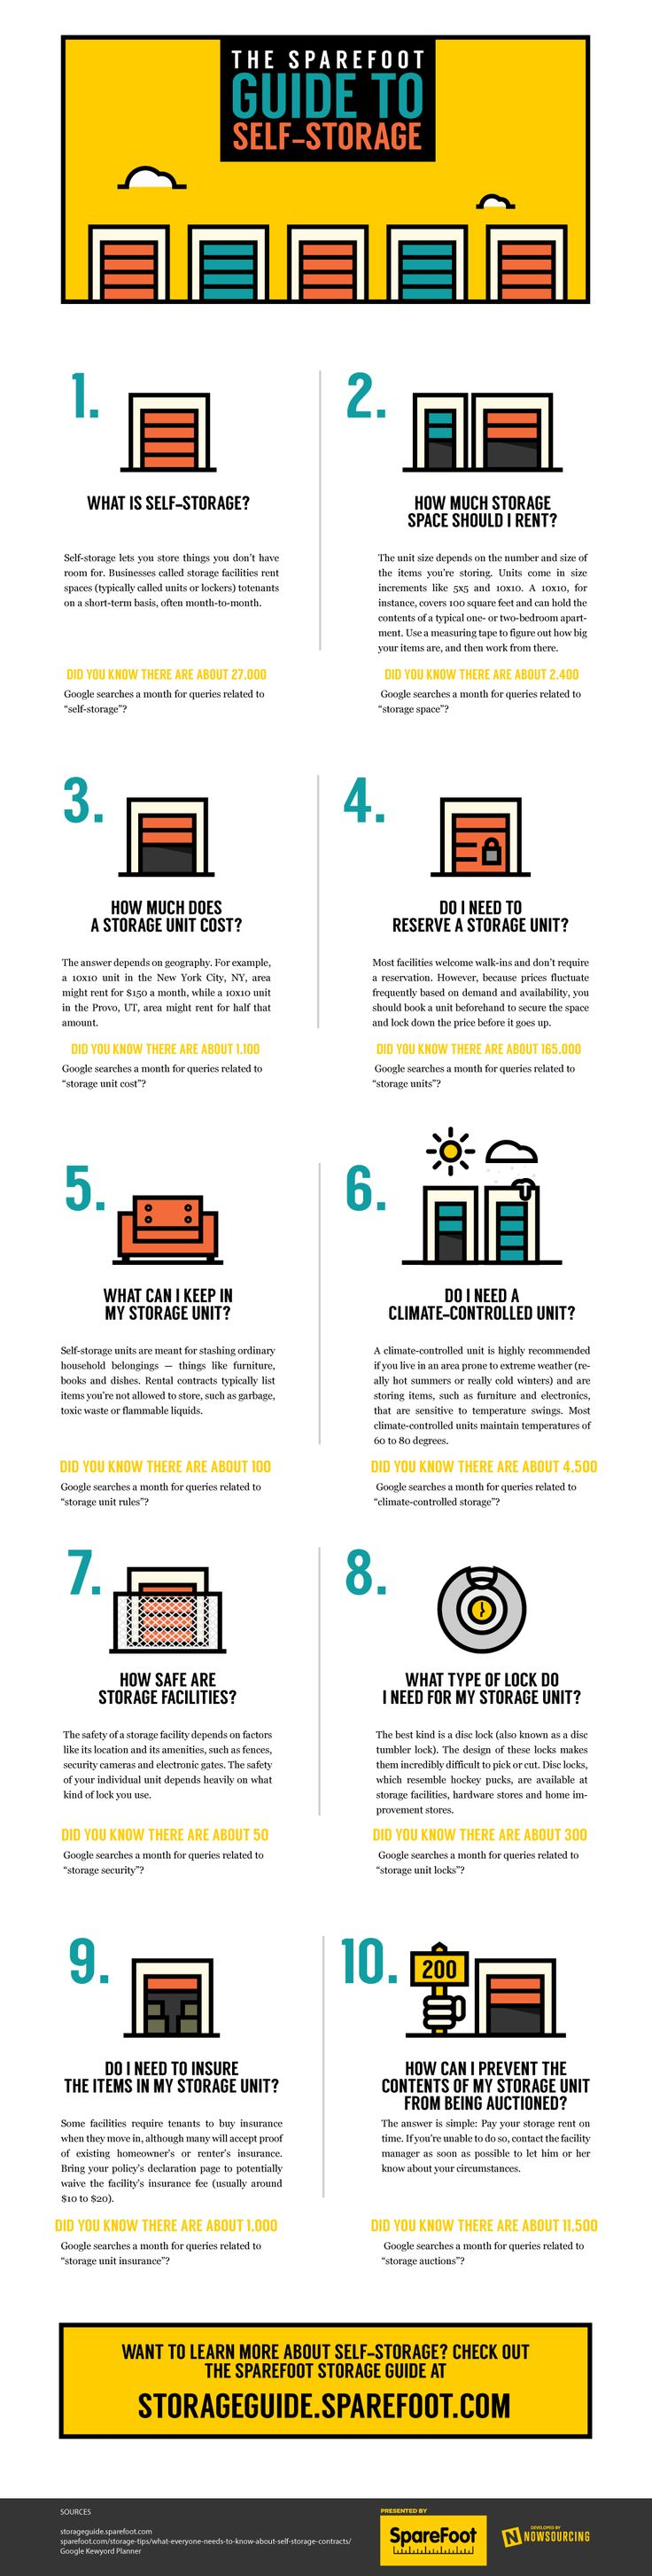 The Sparefoot Guide to Self-Storage #infographic #SelfStorage #Storage